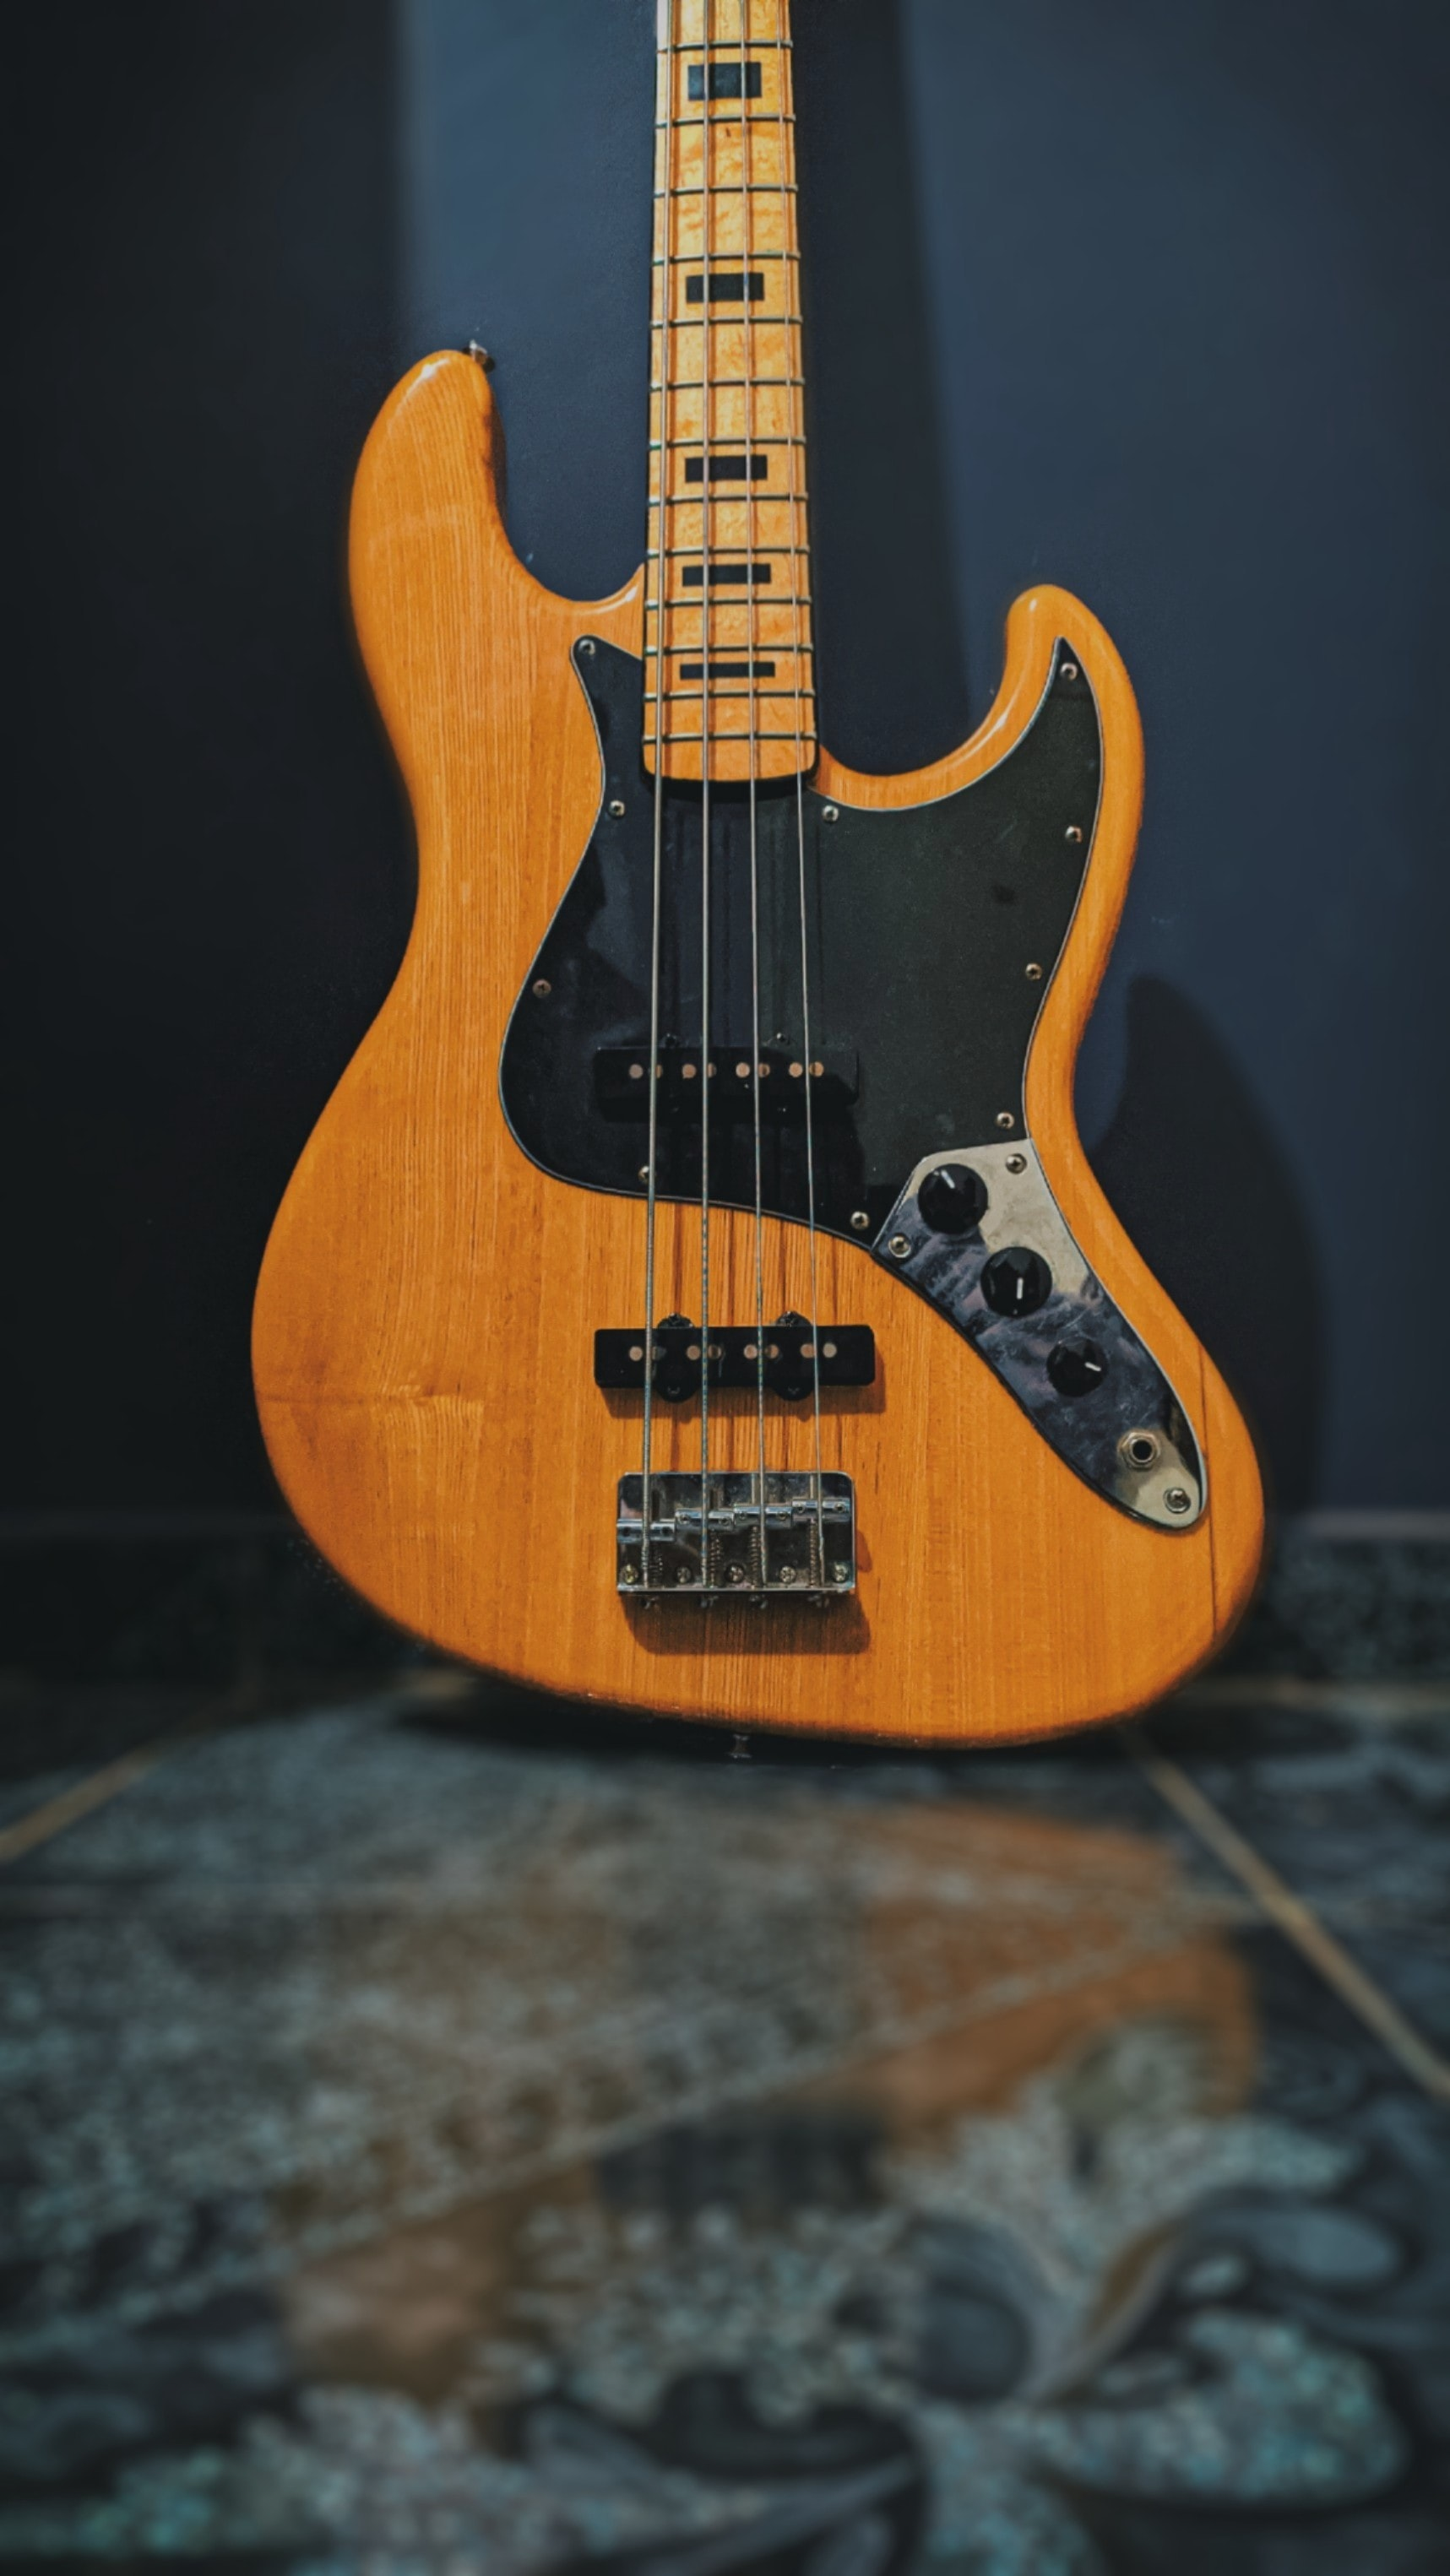 500 Bass Guitar Pictures Hd Download Free Images On